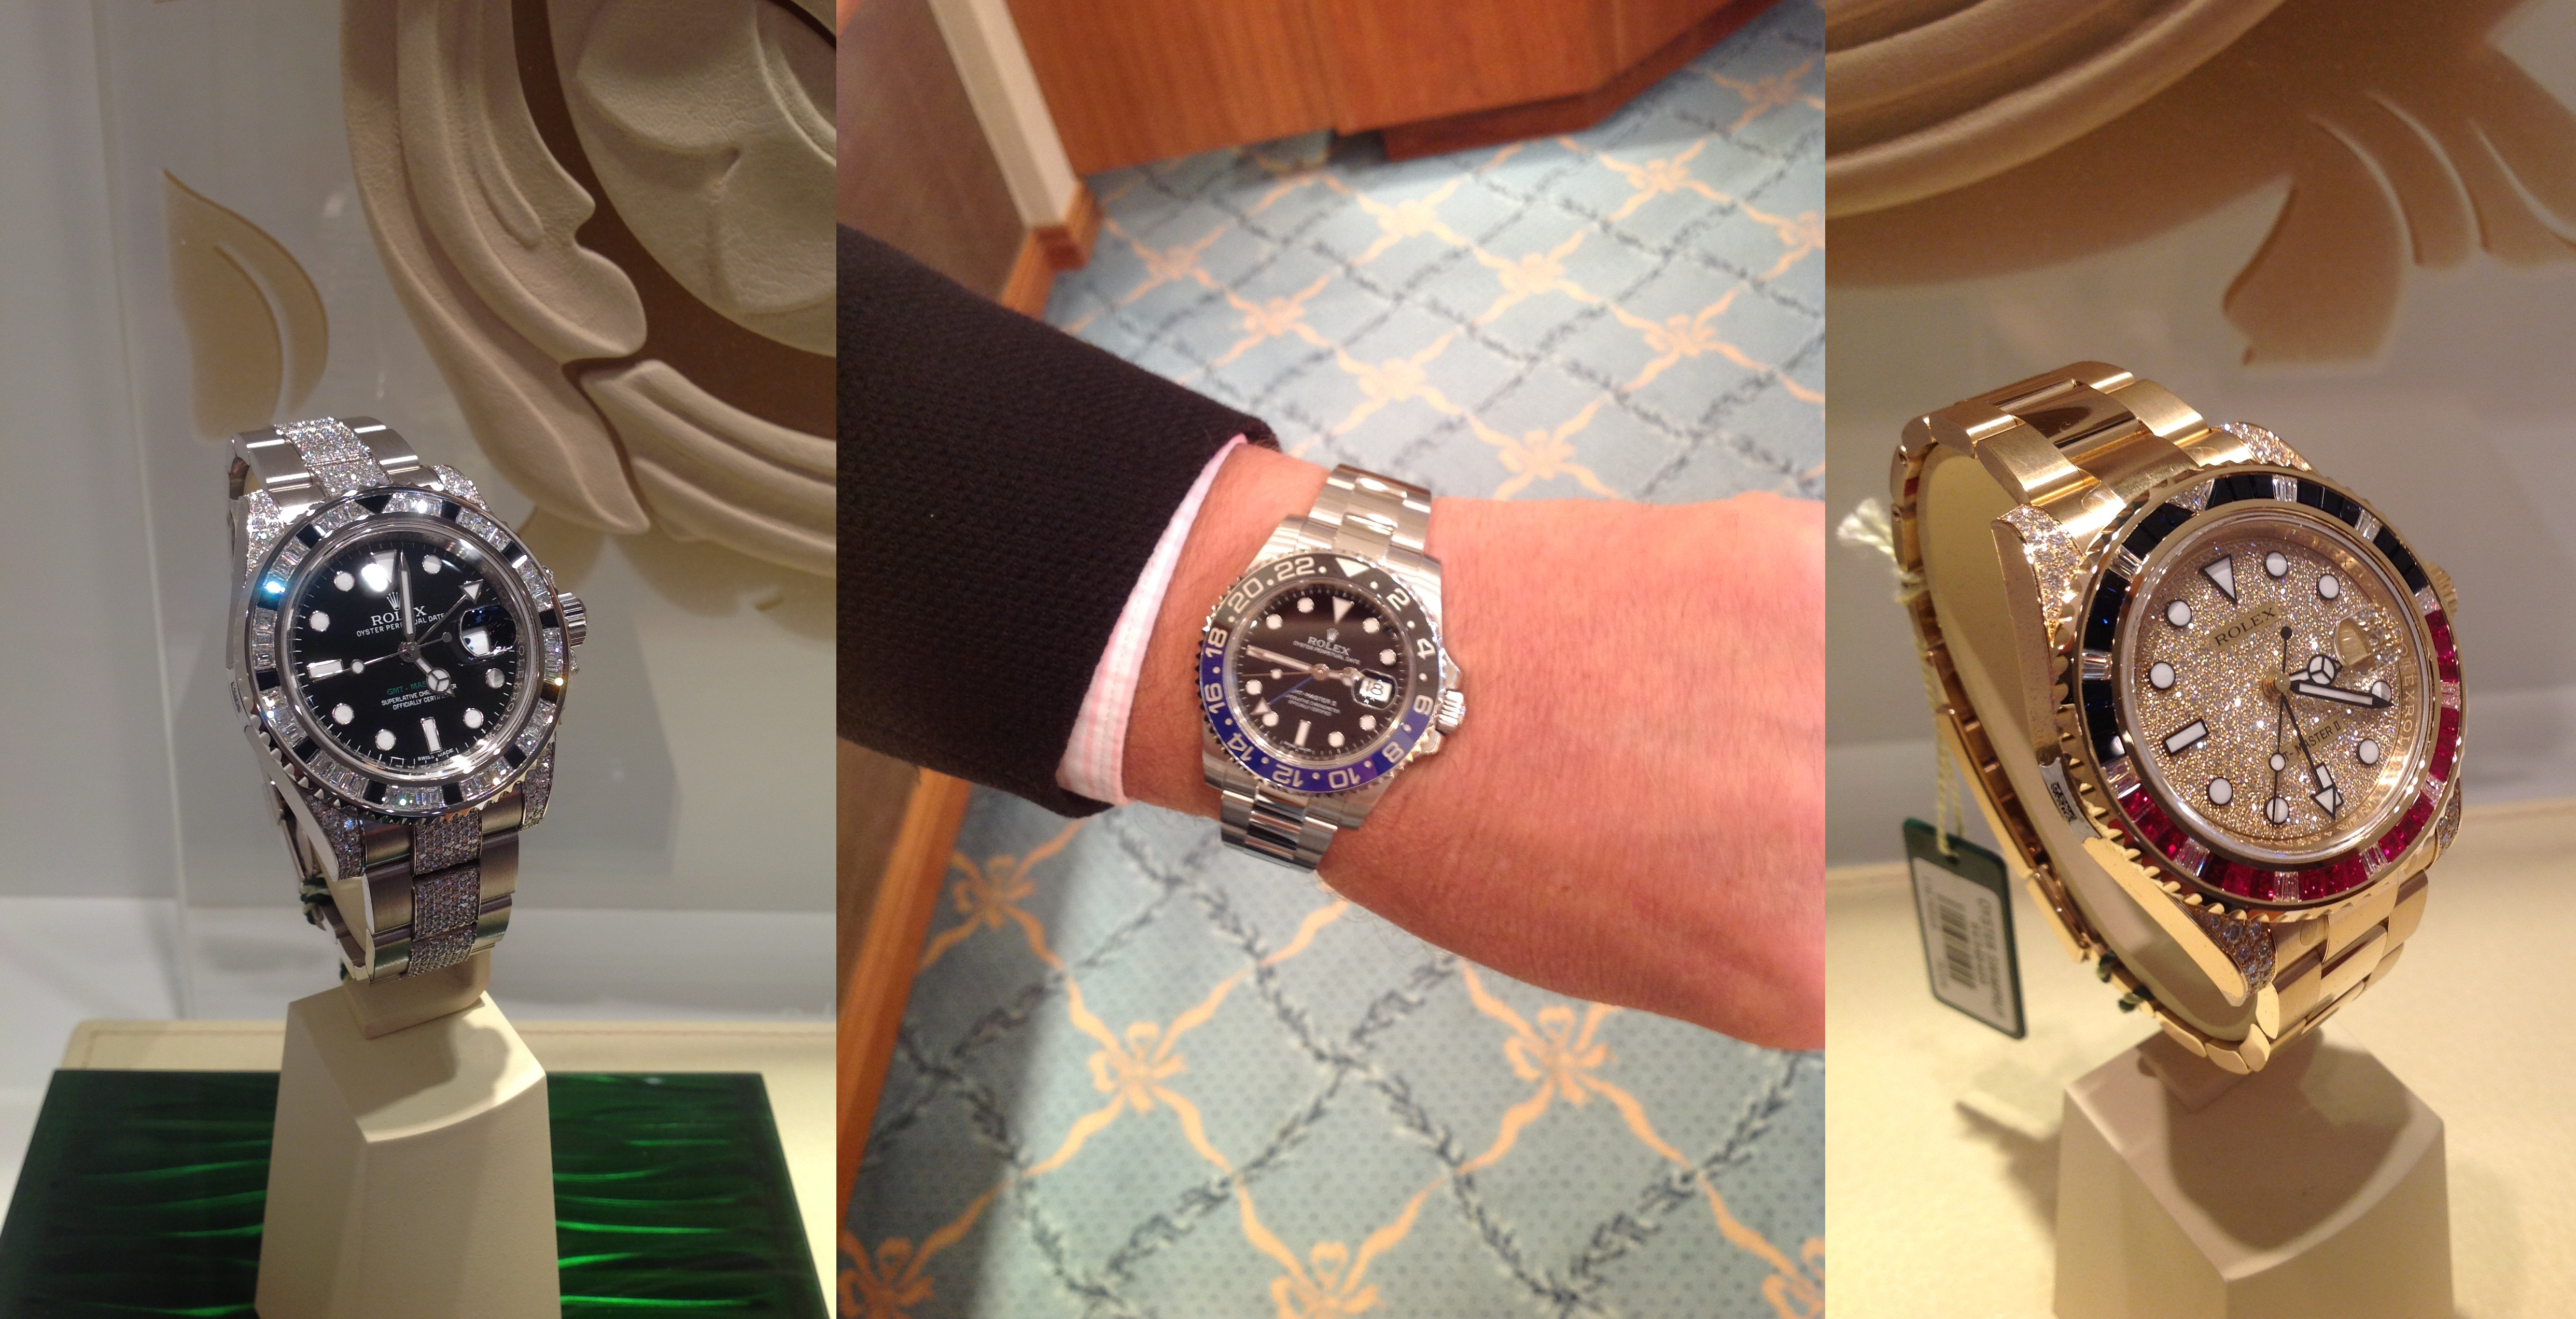 Baselworld 2013 Rolex Collection Displayed At Banks Lyon